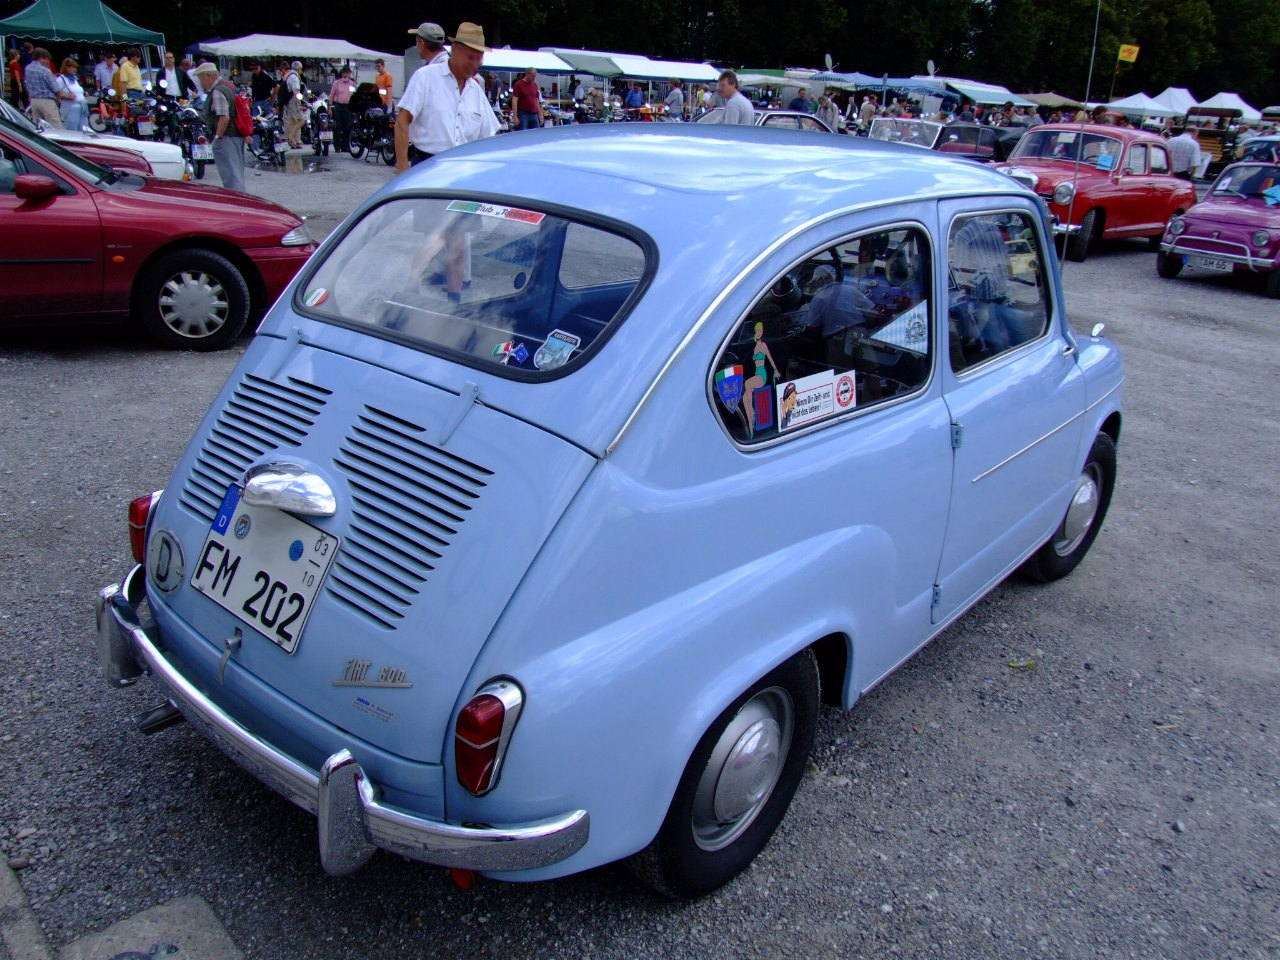 https://upload.wikimedia.org/wikipedia/commons/0/0a/Fiat_600_2.JPG